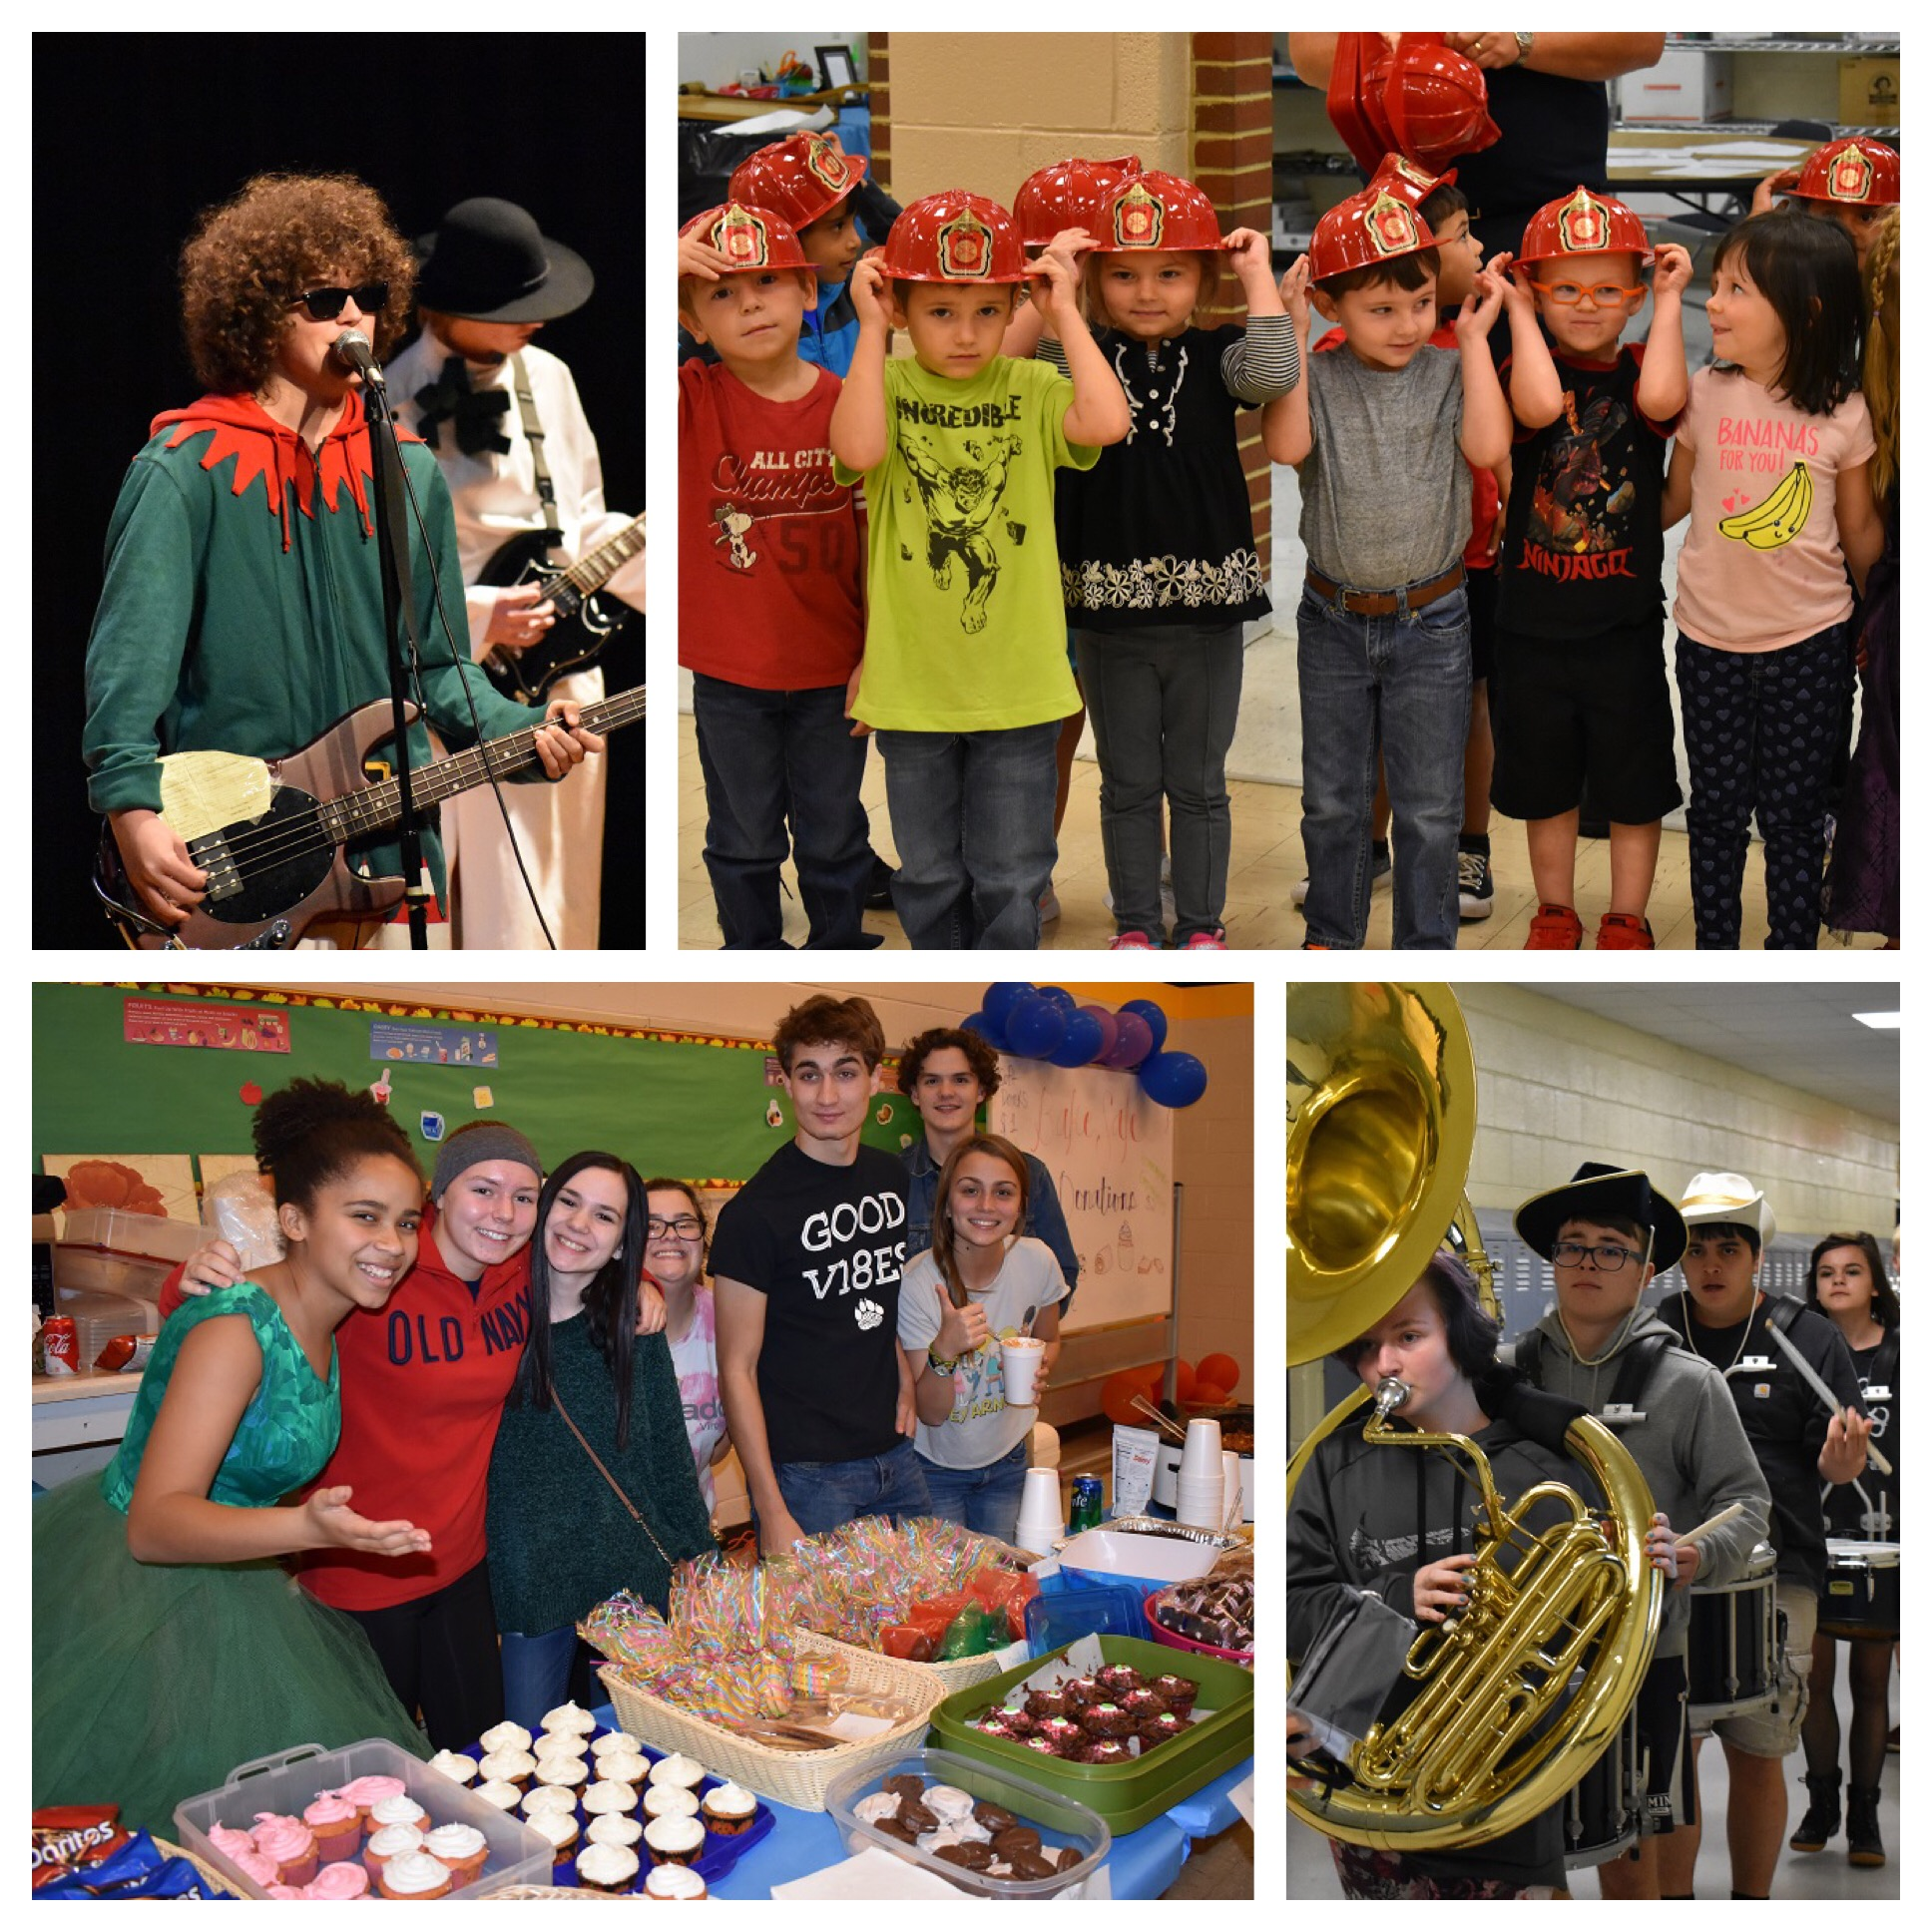 Collage of Students and Events